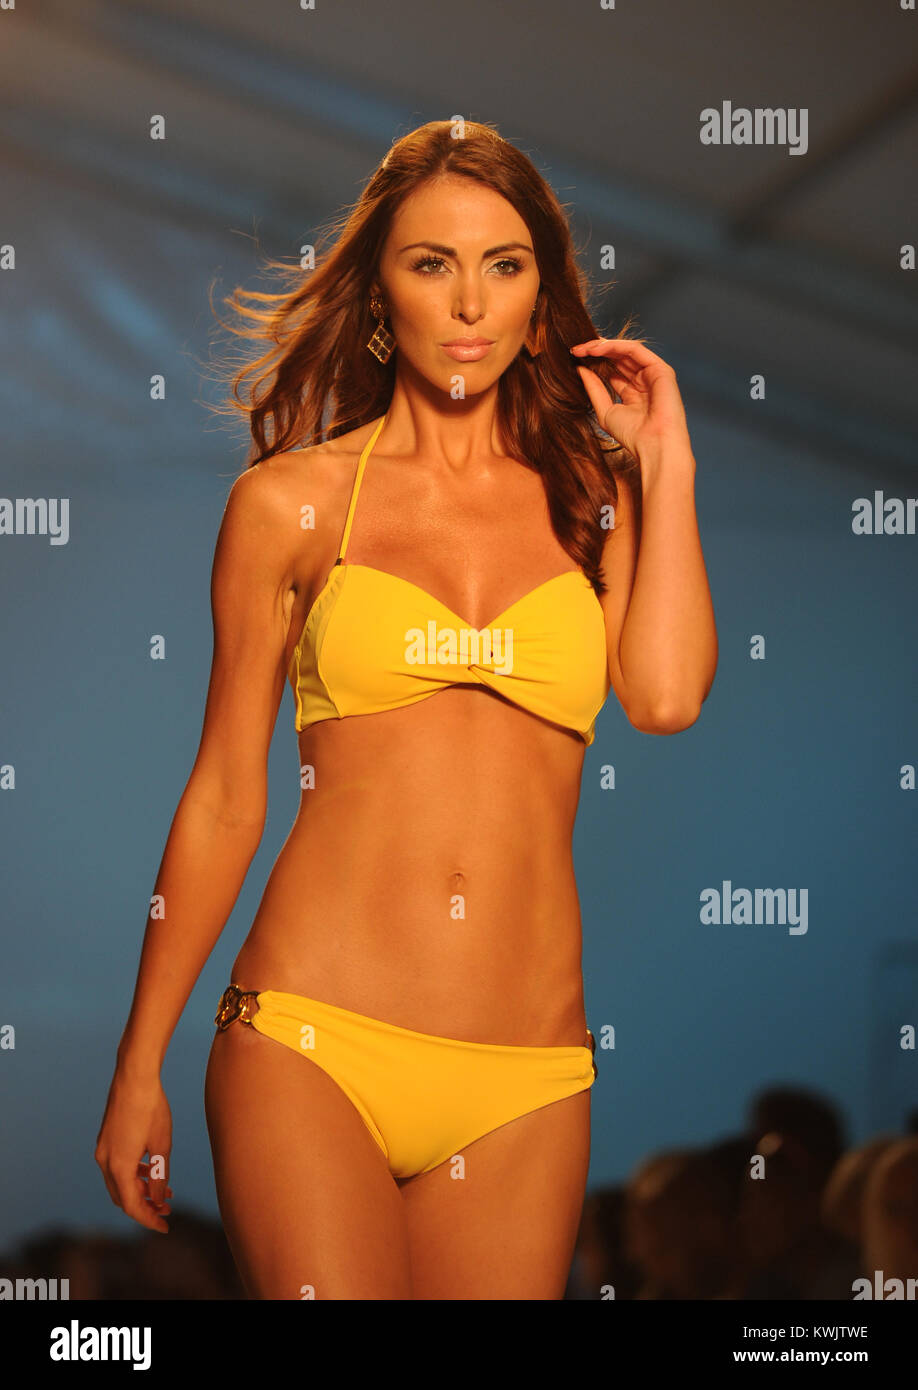 MIAMI BEACH, FL - JULY 16: A model walks the runway for the Caffe Swimwear show during Mercedes-Benz Fashion Week - Stock Image